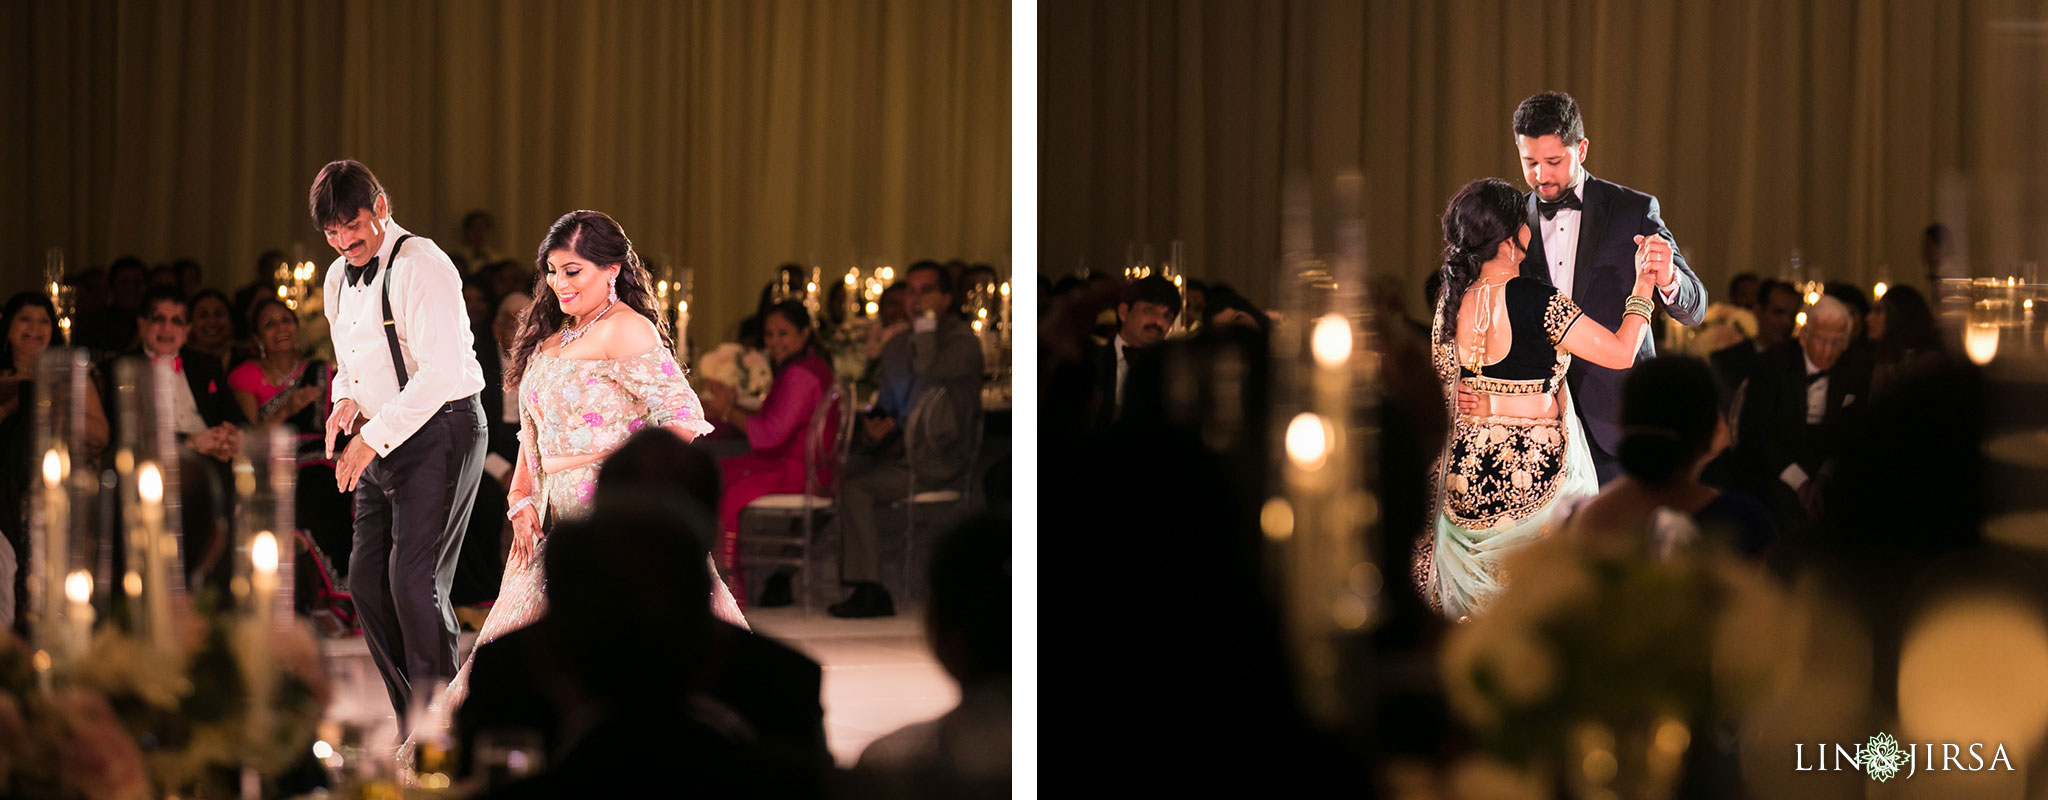 062 montage laguna beach indian wedding reception photography